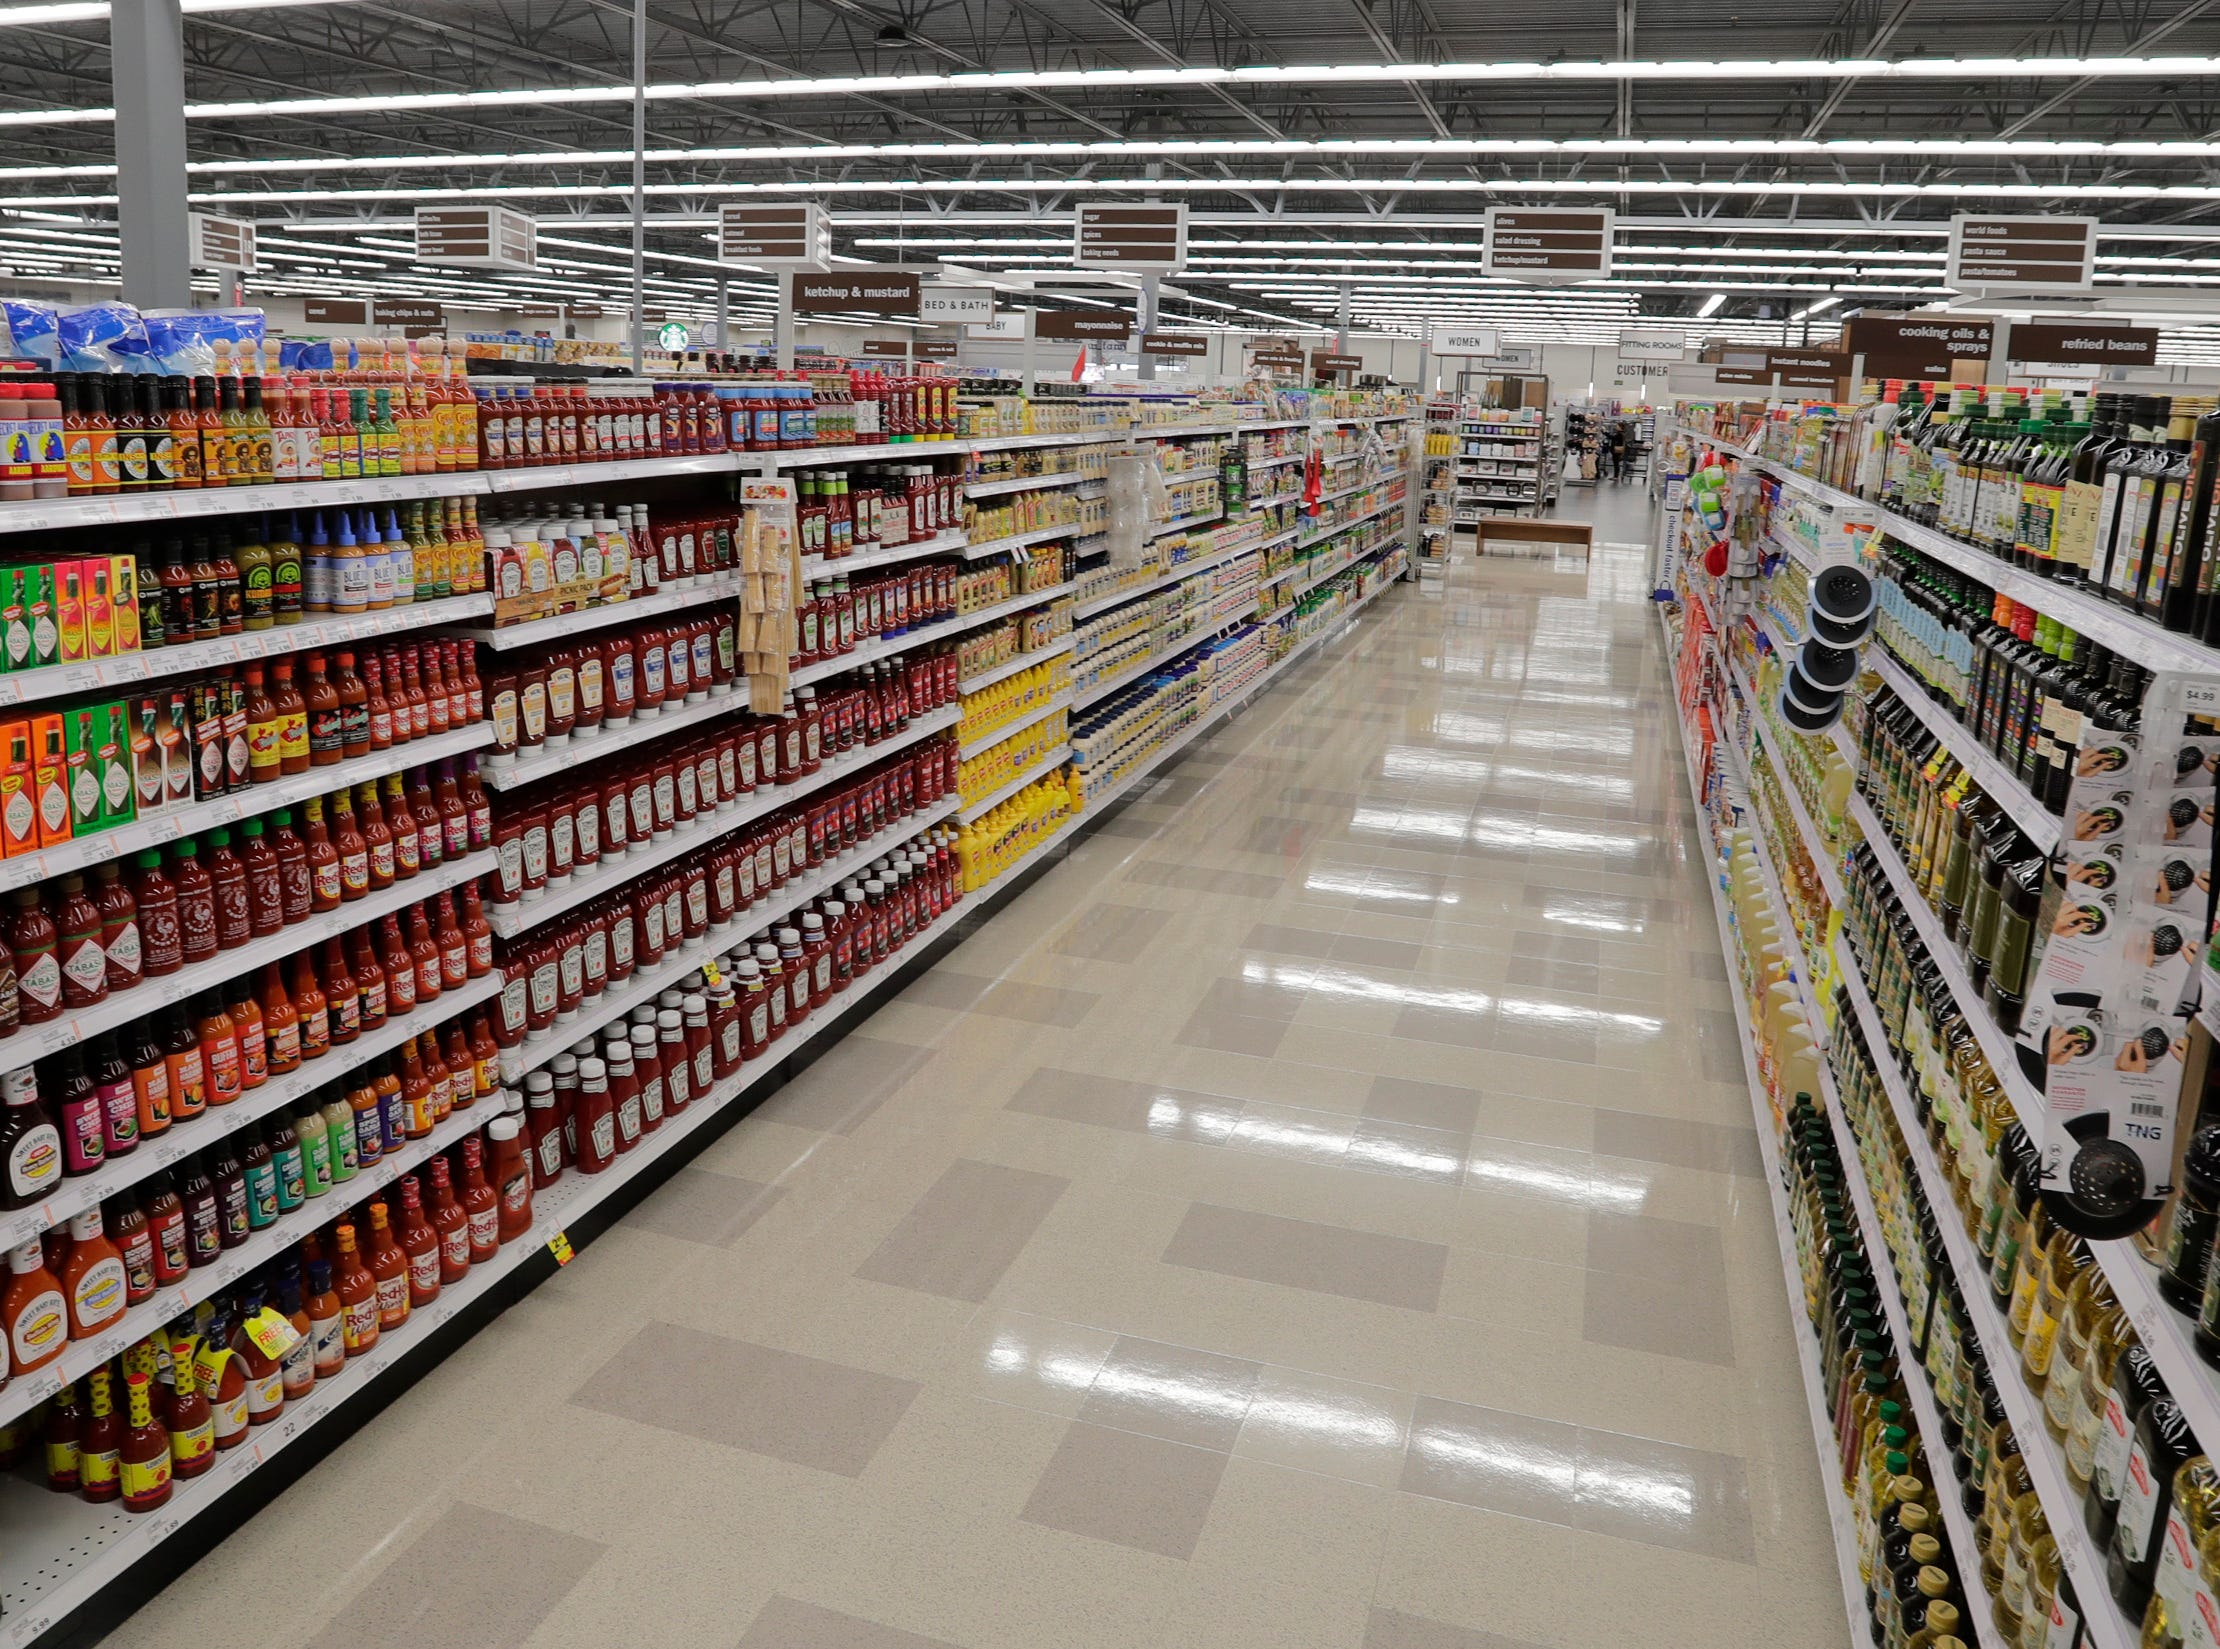 A view in the condiment area at Meijer, Thursday April 25, 2019, in Sheboygan, Wis. The 155,000-square-foot supercenter has 300 employees on opening day.